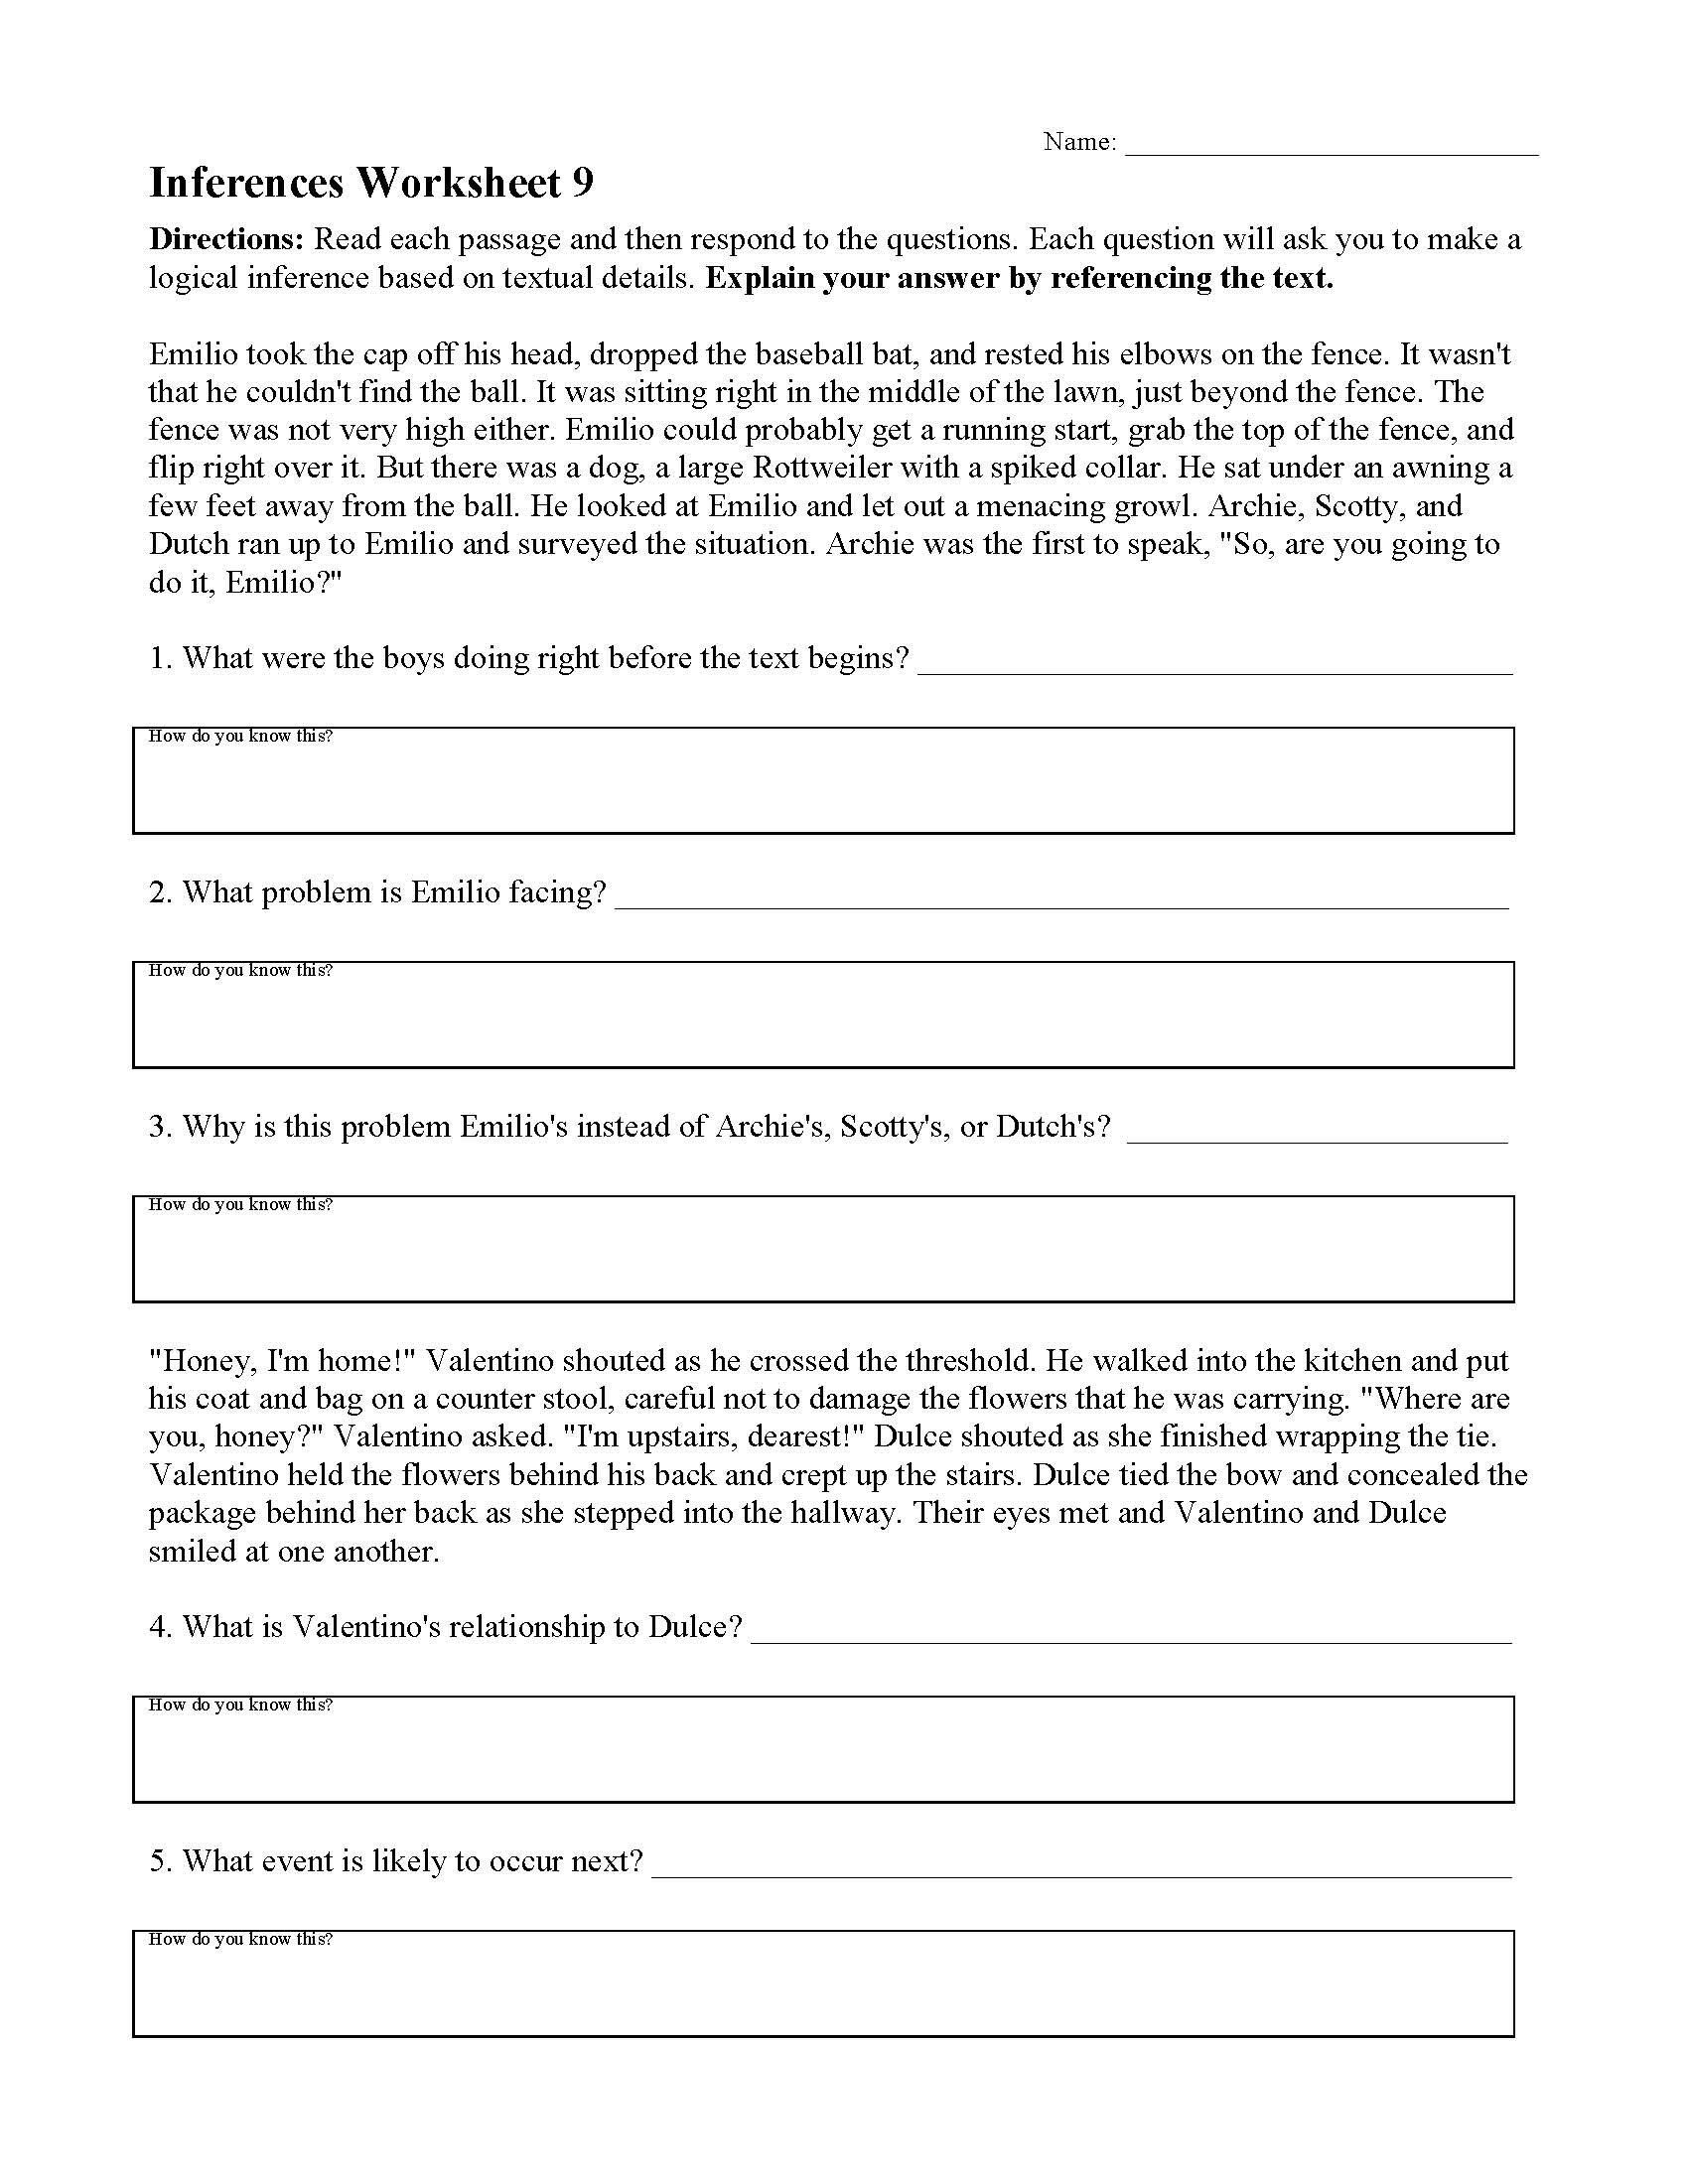 Making Inferences Worksheets 4th Grade Inferences